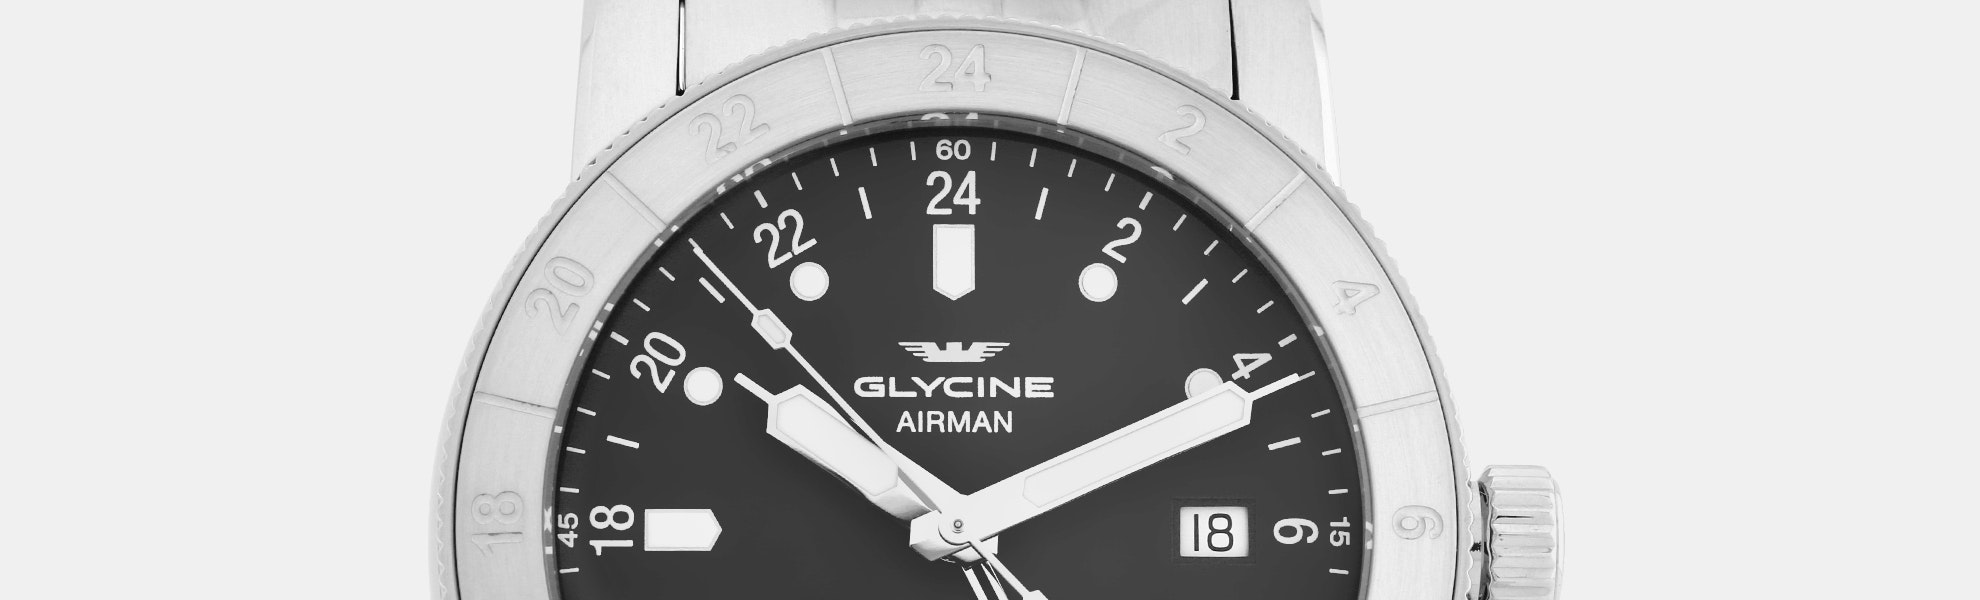 Glycine Airman Automatic Watch